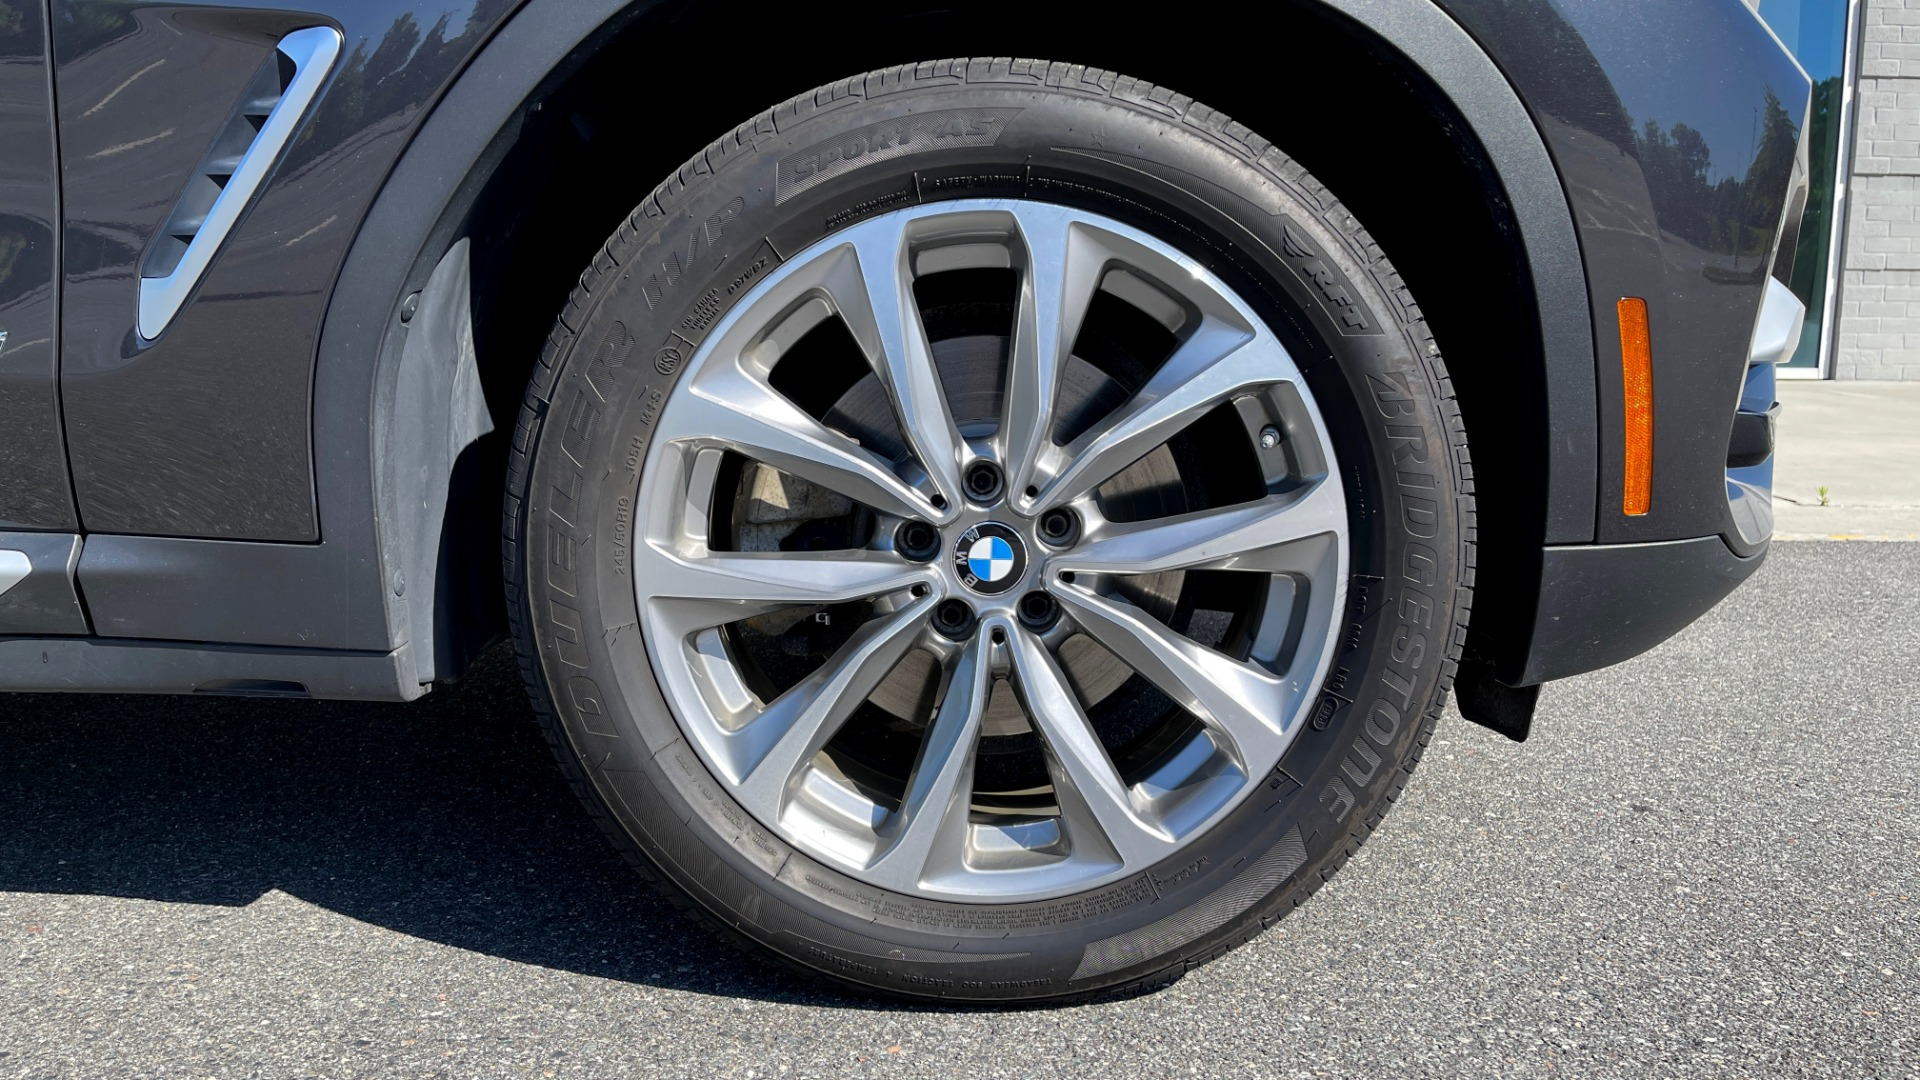 Used 2018 BMW X3 XDRIVE30I PREMIUM / NAV / DRVR ASST PLUS / CONV PKG / SUNROOF / REARVIEW for sale $33,795 at Formula Imports in Charlotte NC 28227 82